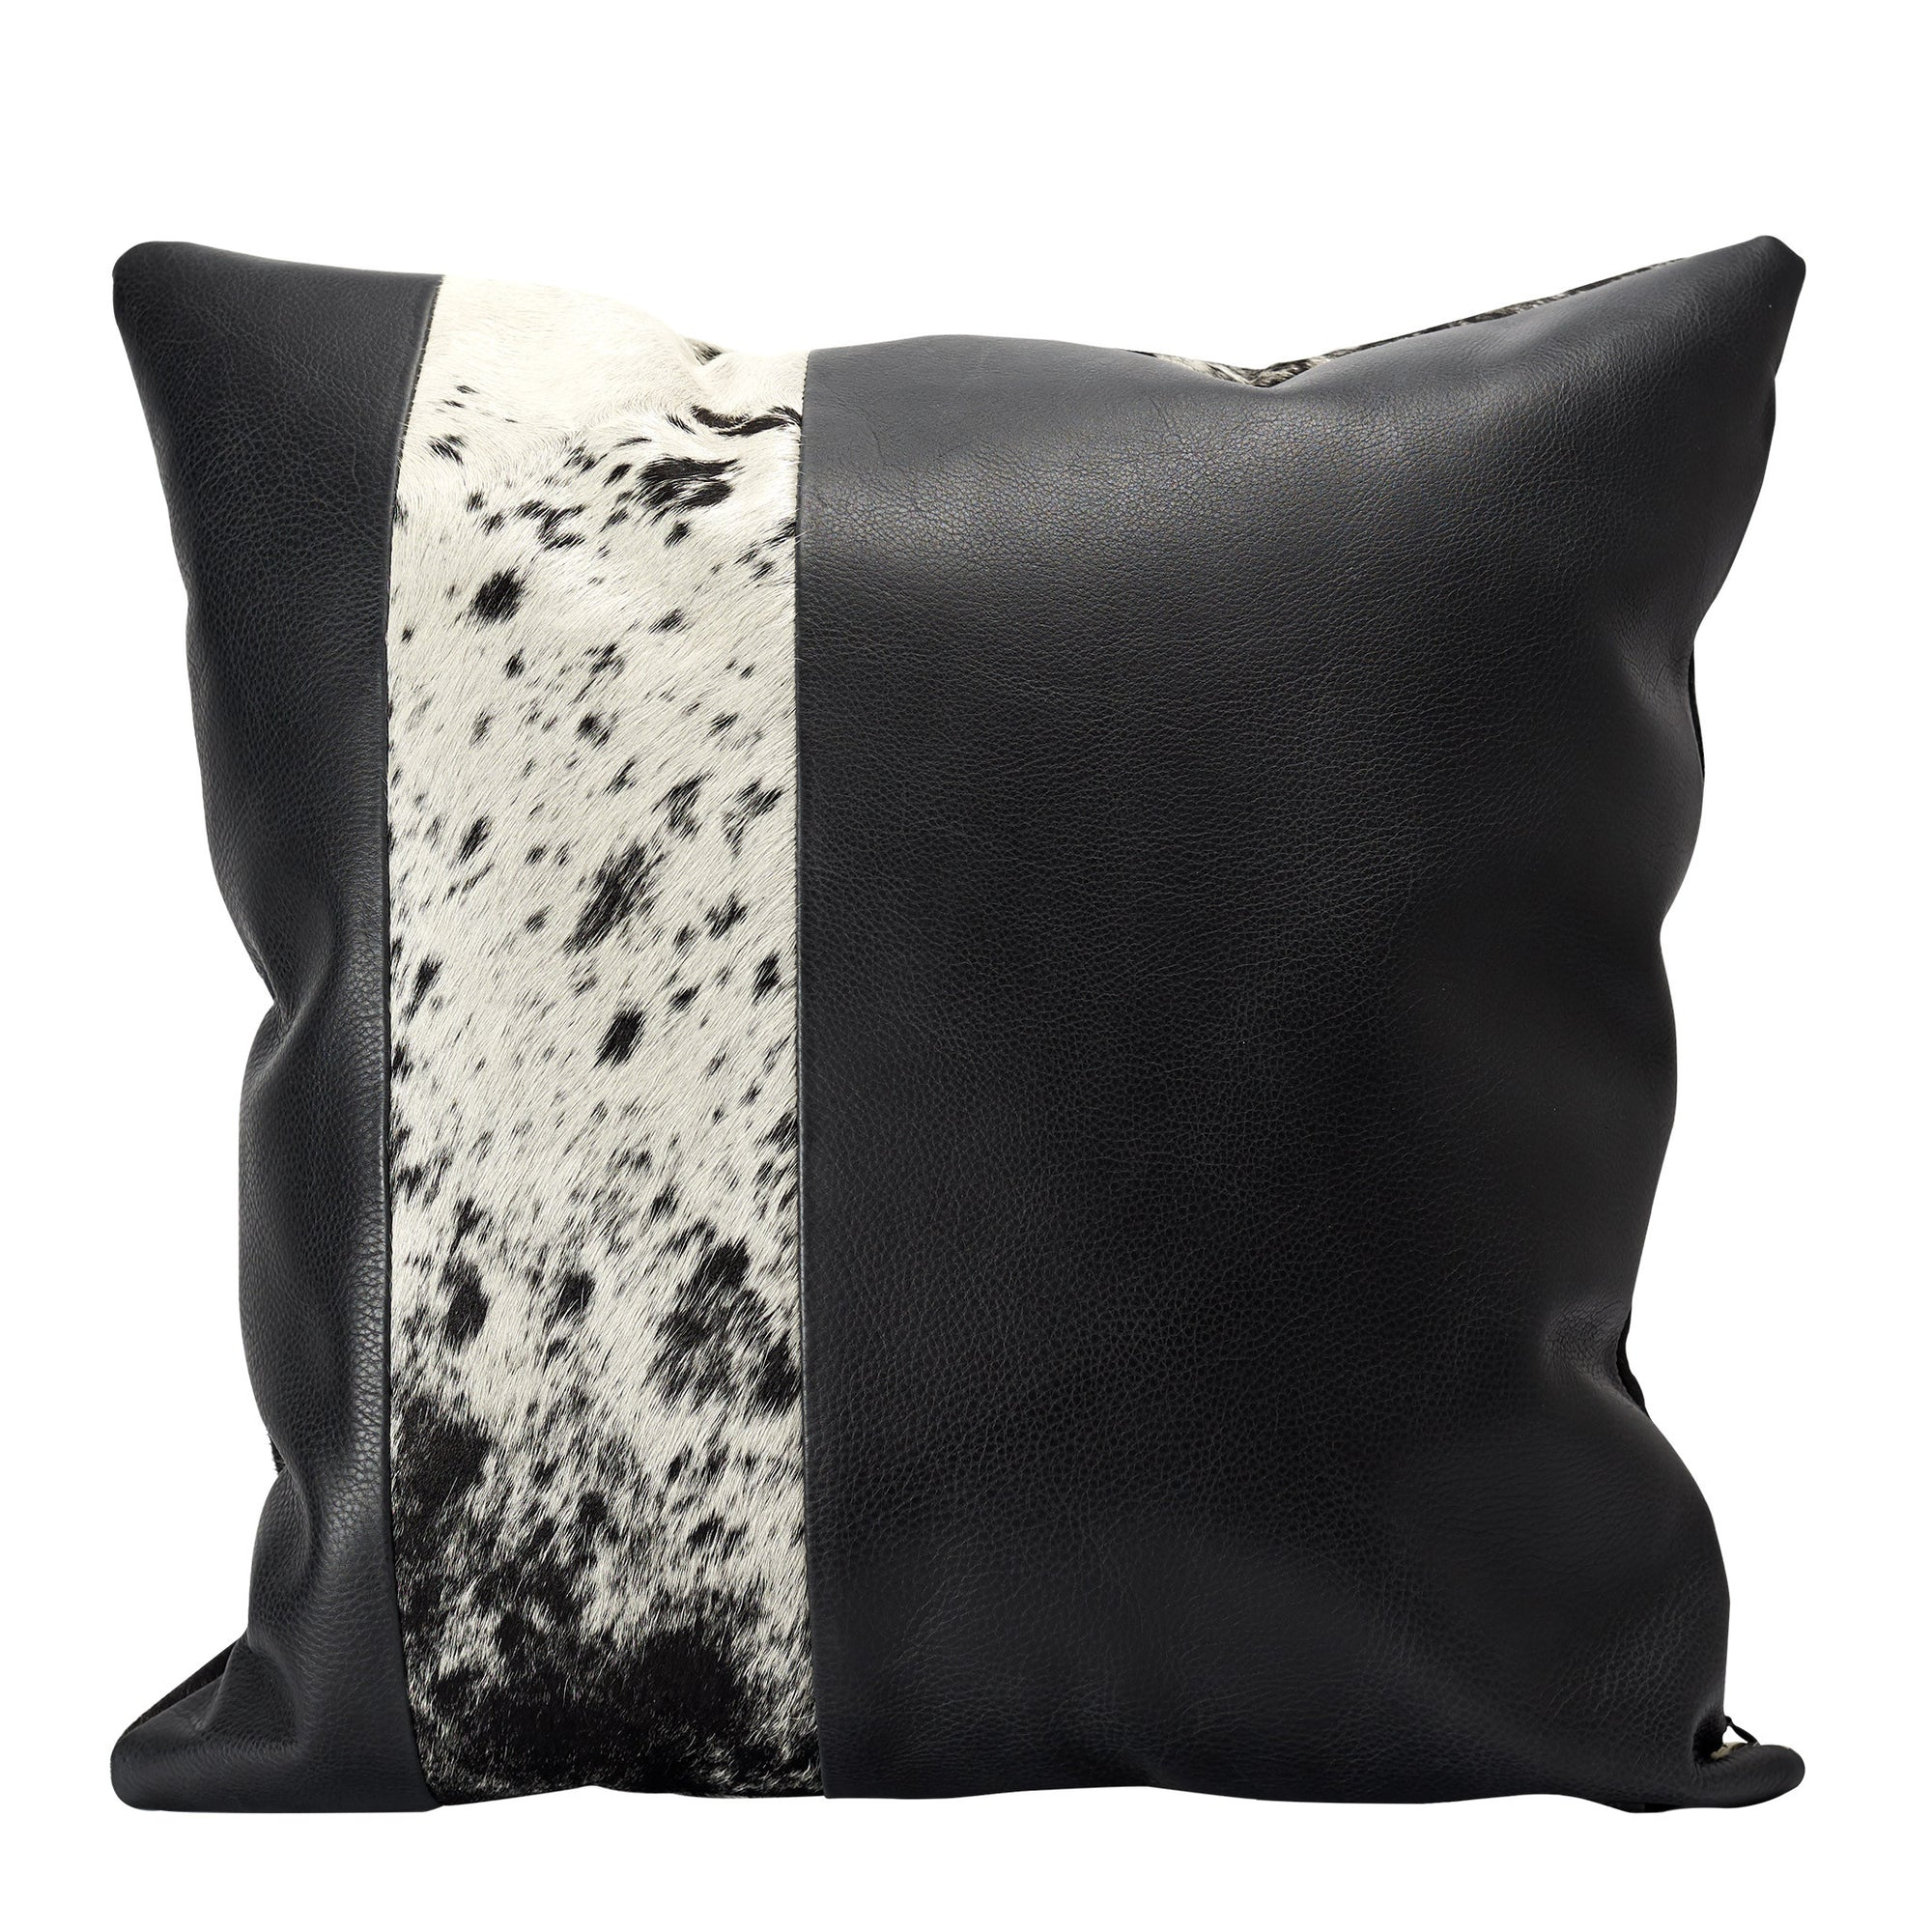 Dual Leather Cowhide Pillow Cushion by Capra Leather